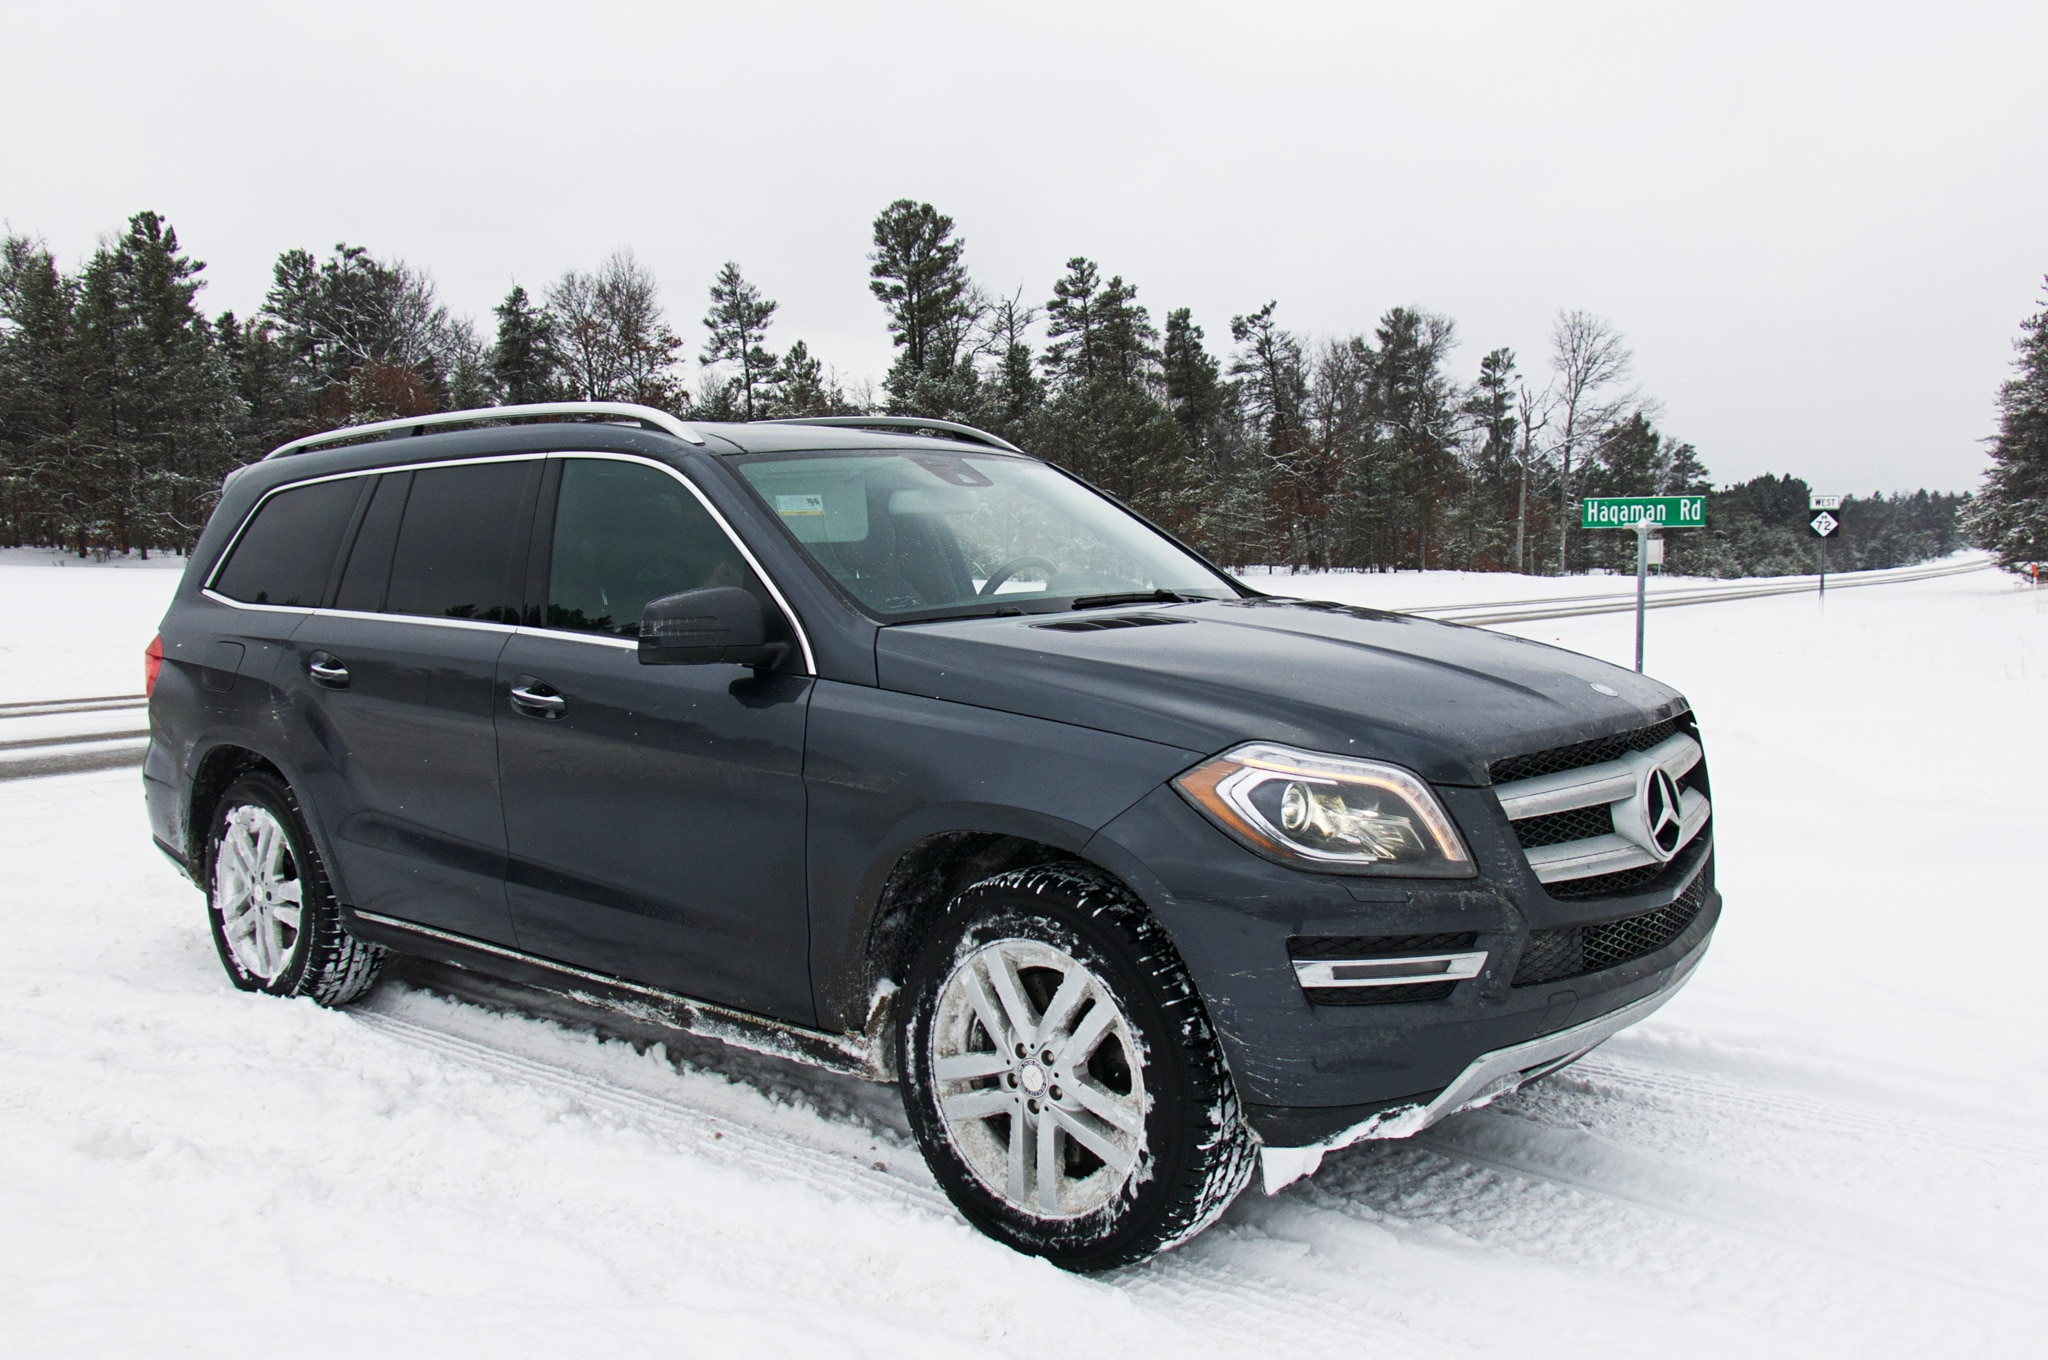 2013 Mercedes Benz GL450 Front Three Quarters View In Snow 21